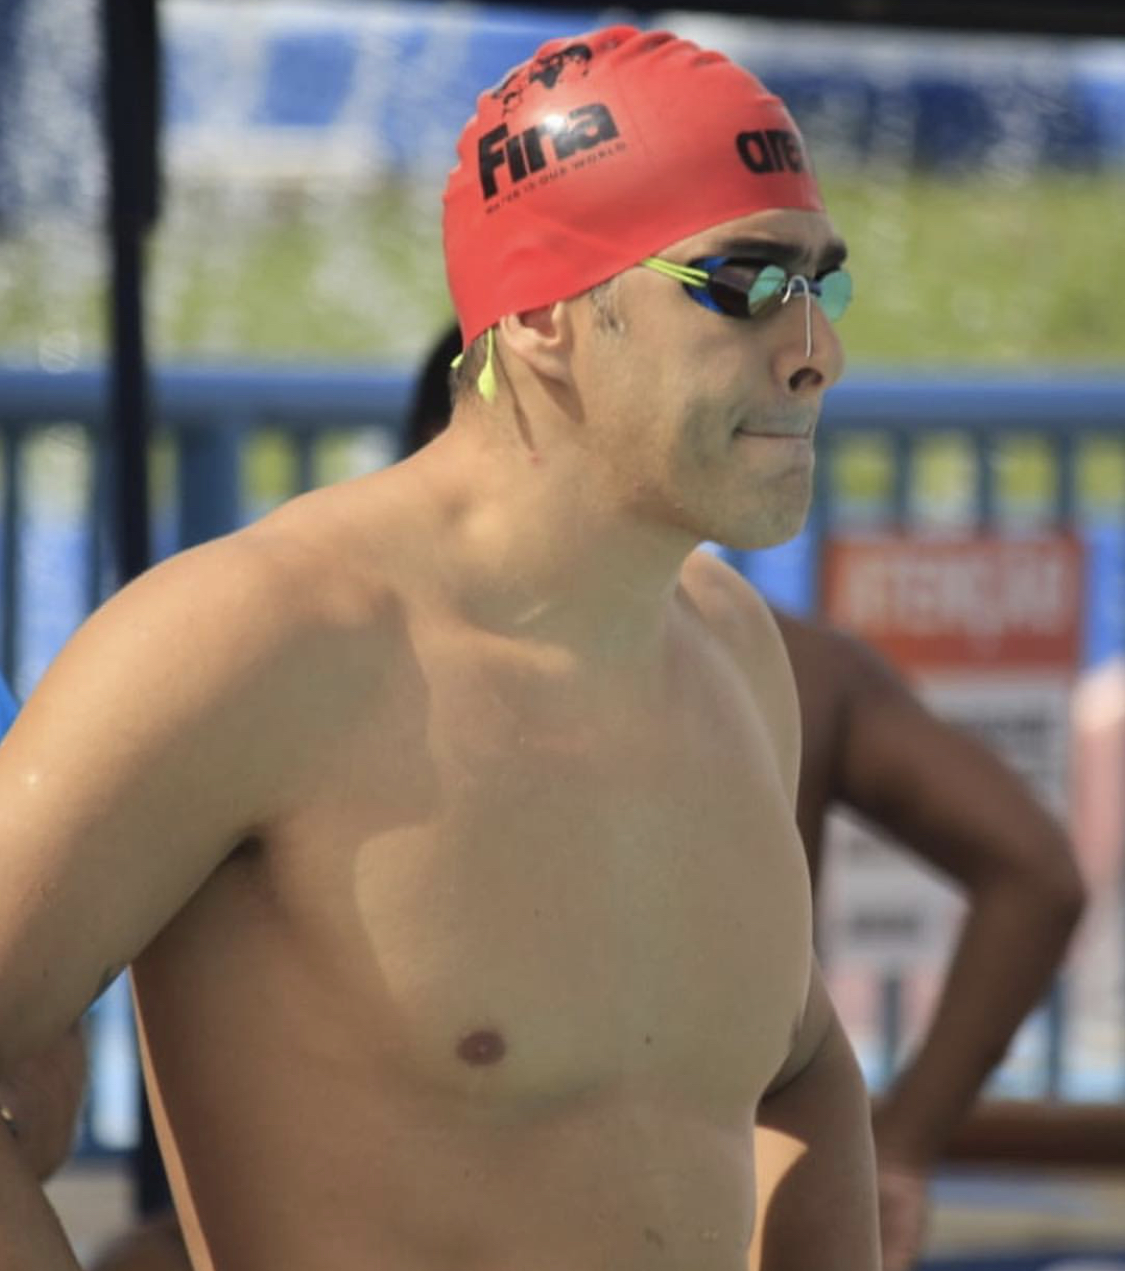 Top Brazilian Swimmer Seeking to Win in the US